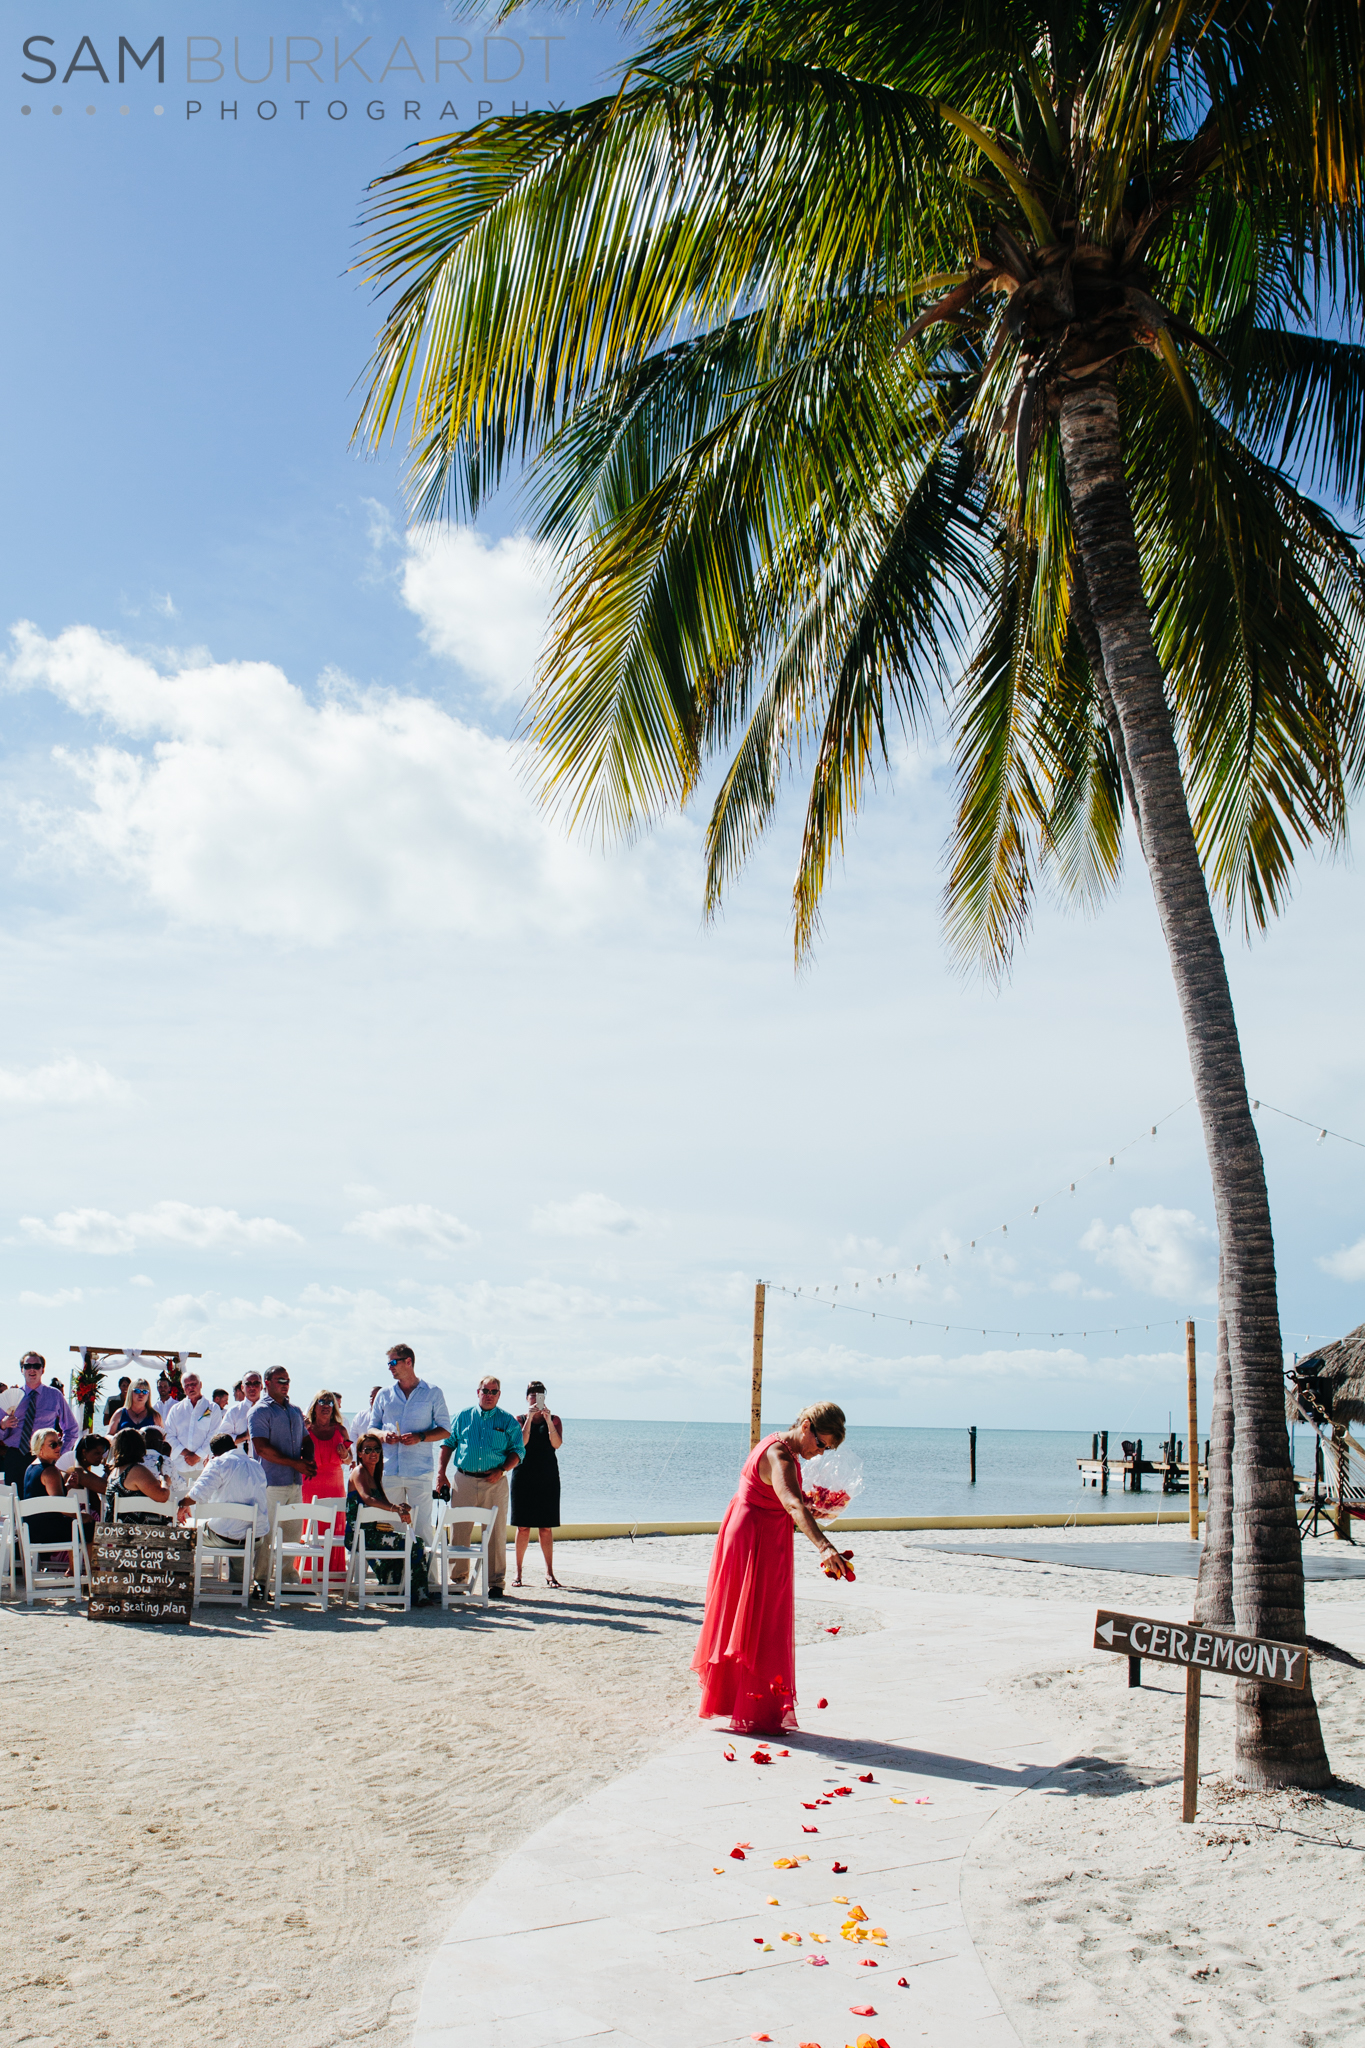 samburkardt_key_west_wedding_marathon_florida_summer_beach_ocean_front_0026.jpg